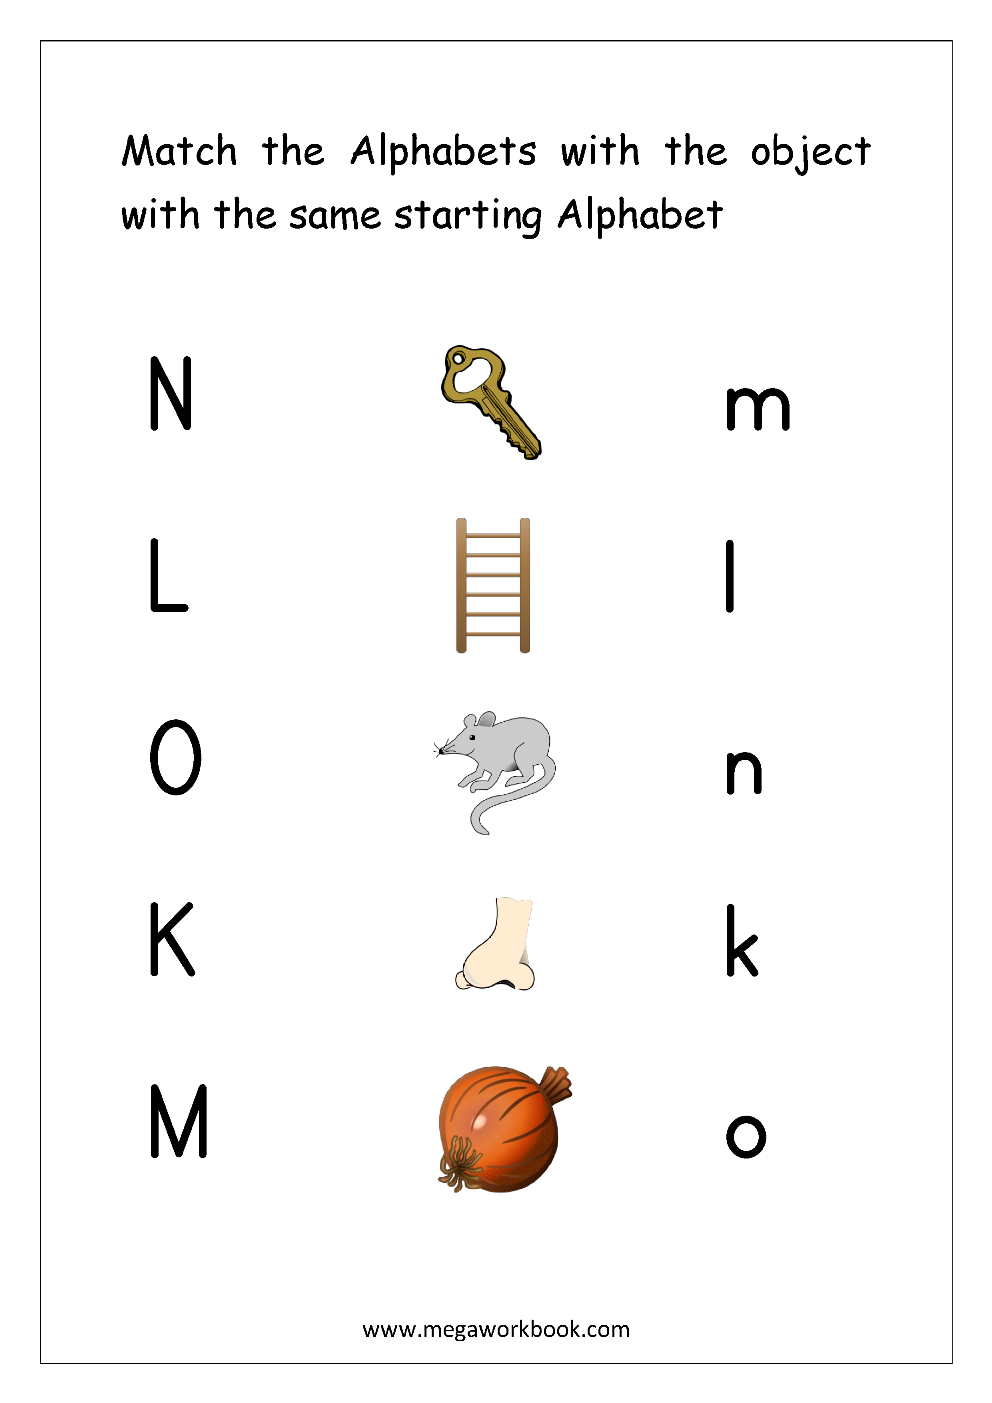 Free English Worksheets - Alphabet Matching - Megaworkbook in Alphabet Matching Worksheets For Nursery